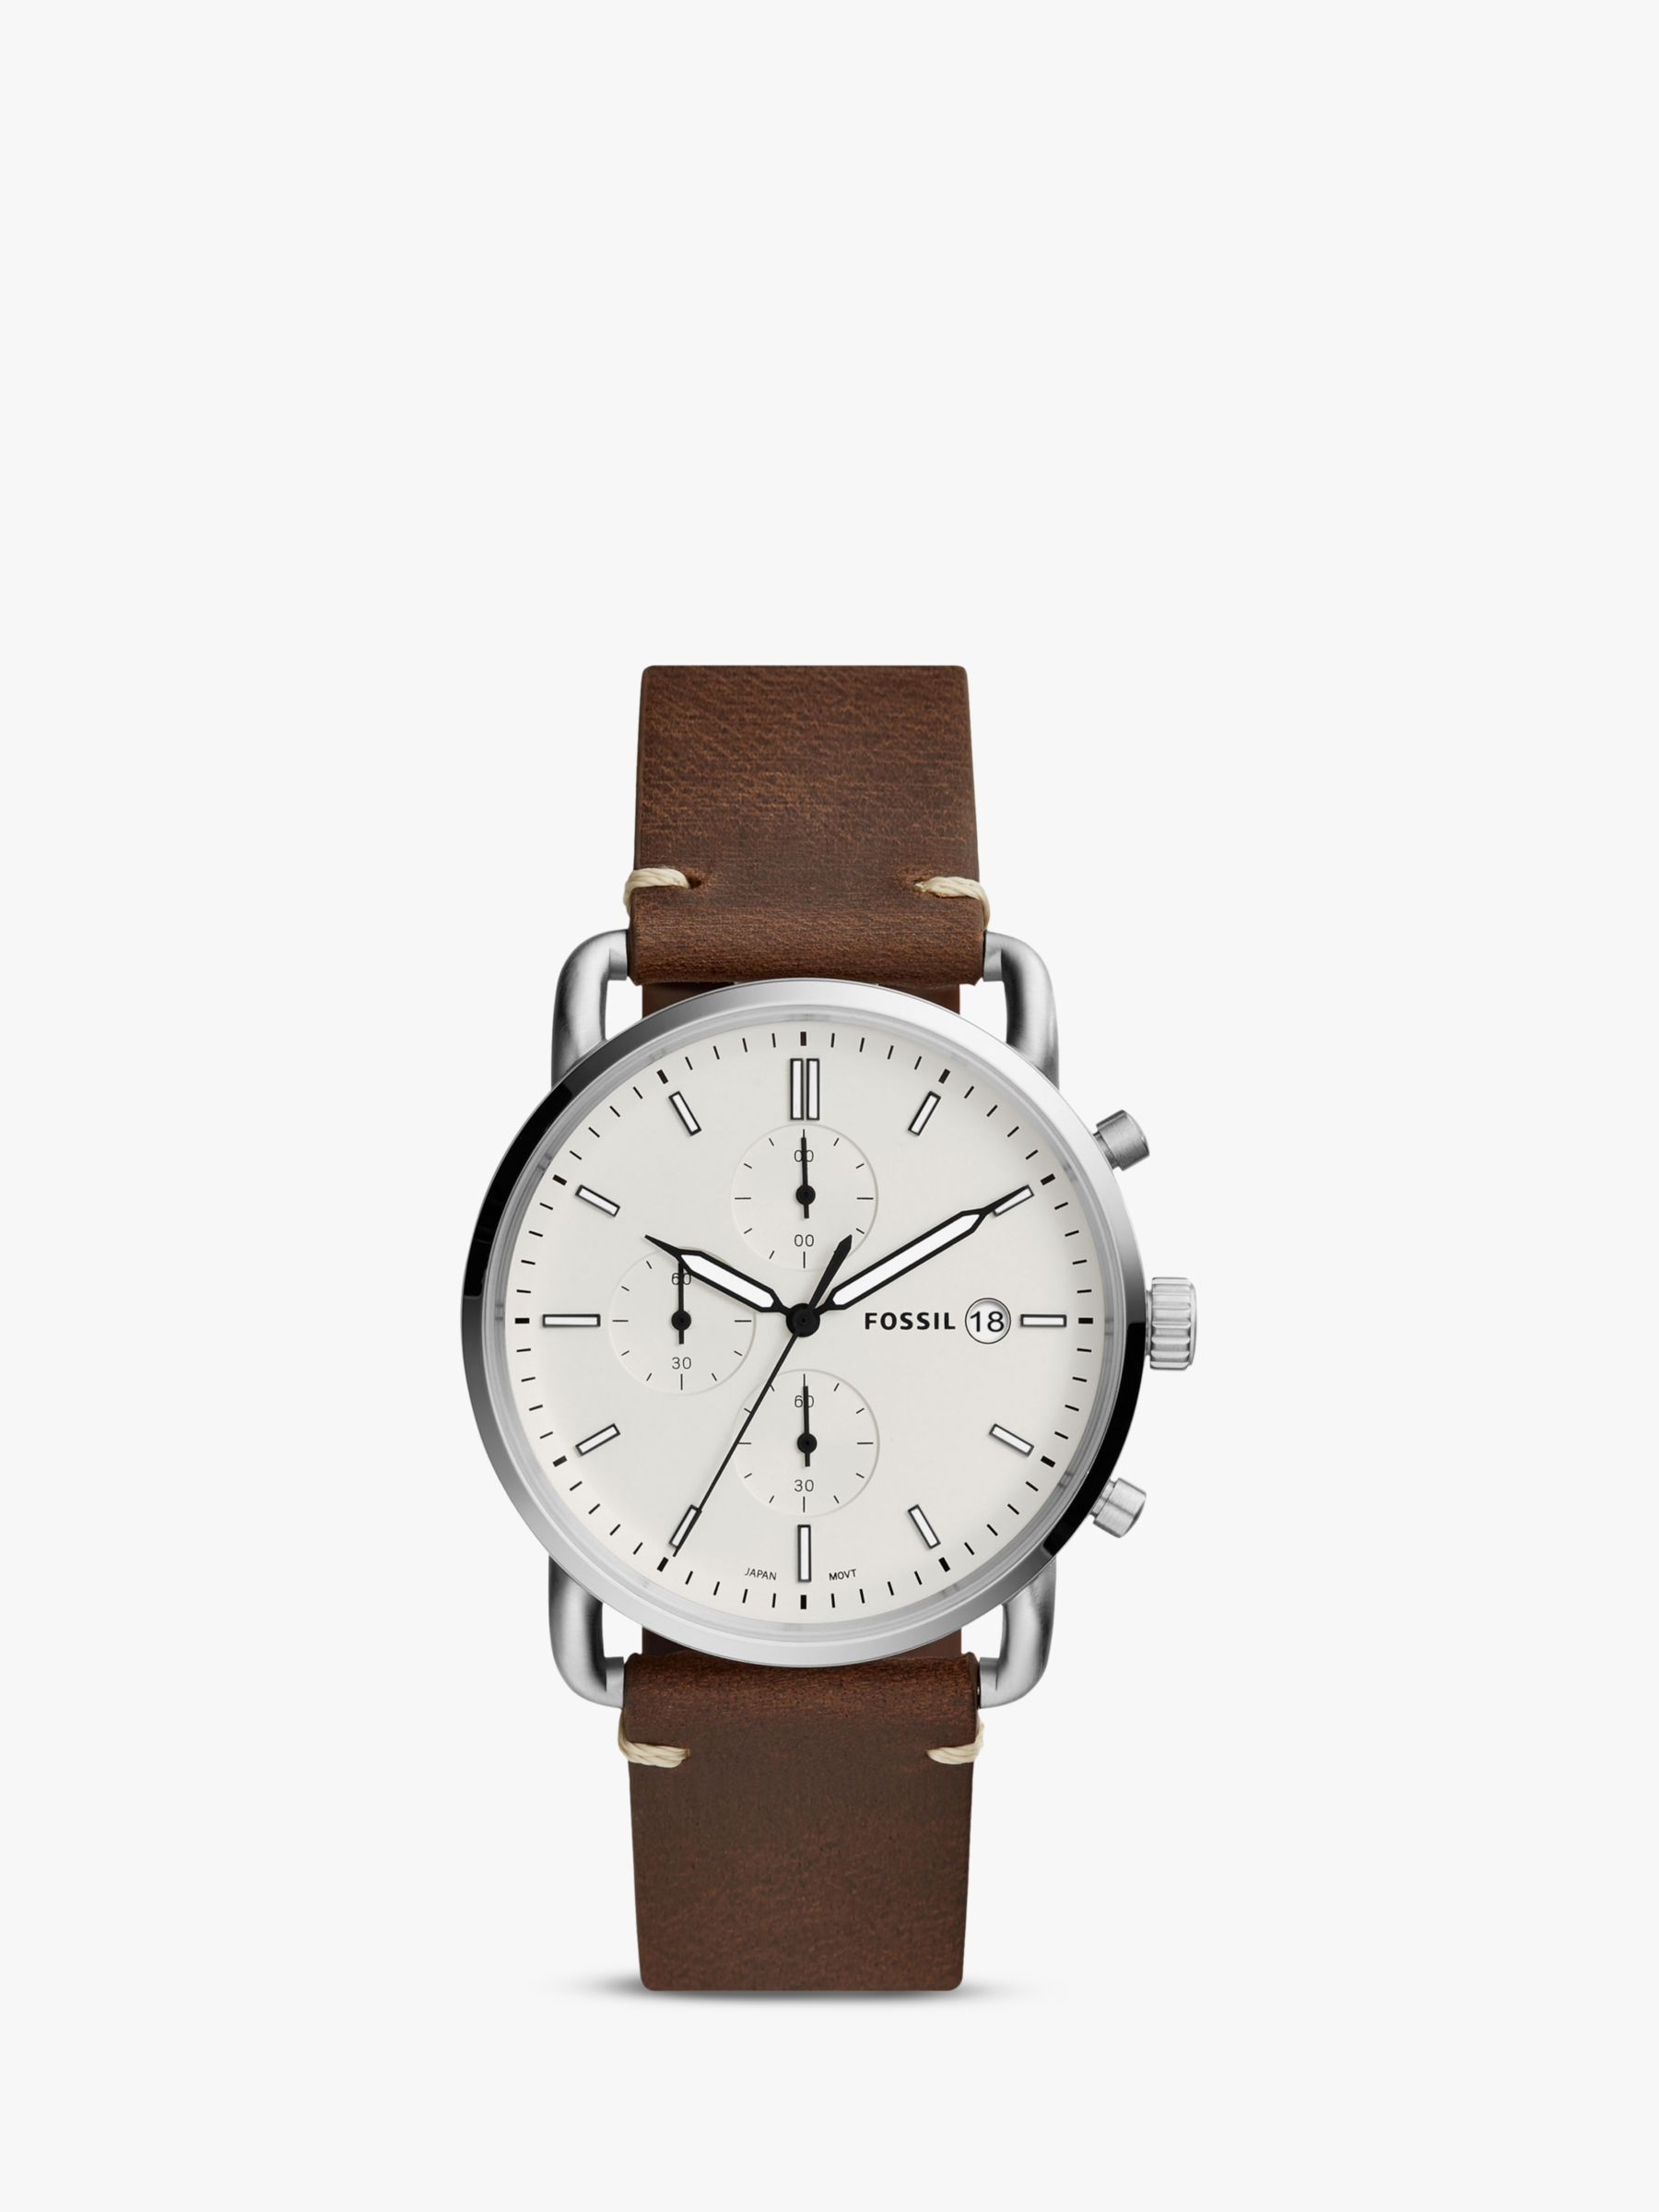 Fossil Fossil Men's Commuter Date Leather Strap Watch